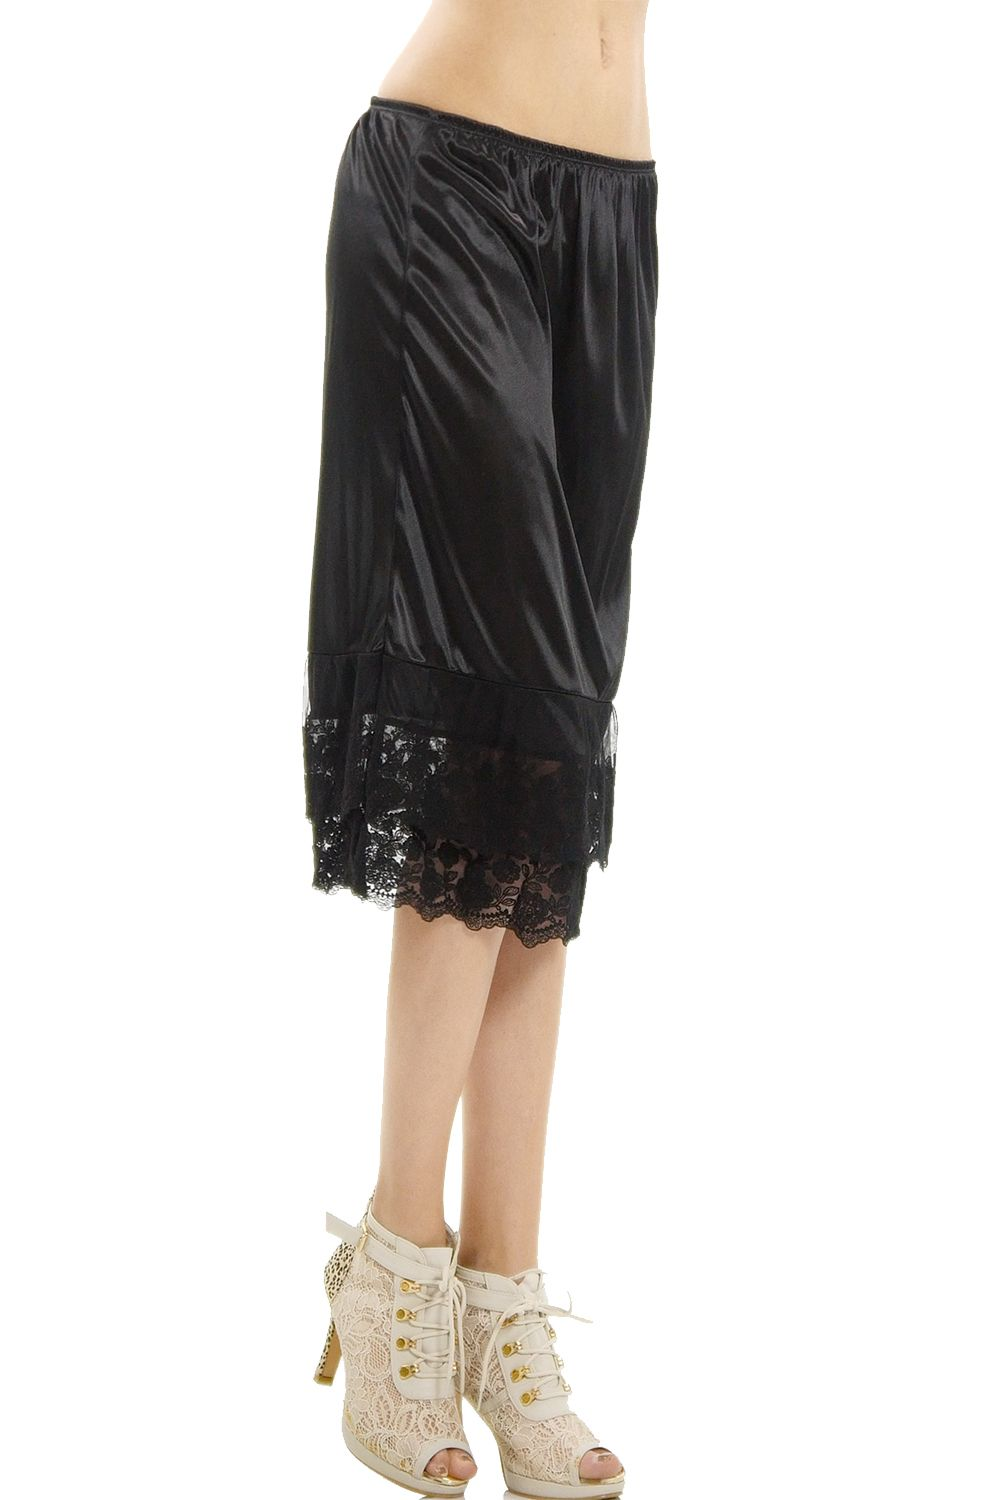 0810744e9fbe Women's Long Double Layered Lace Satin Skirt Extender Underskirt Half Slip# Layered, #Lace